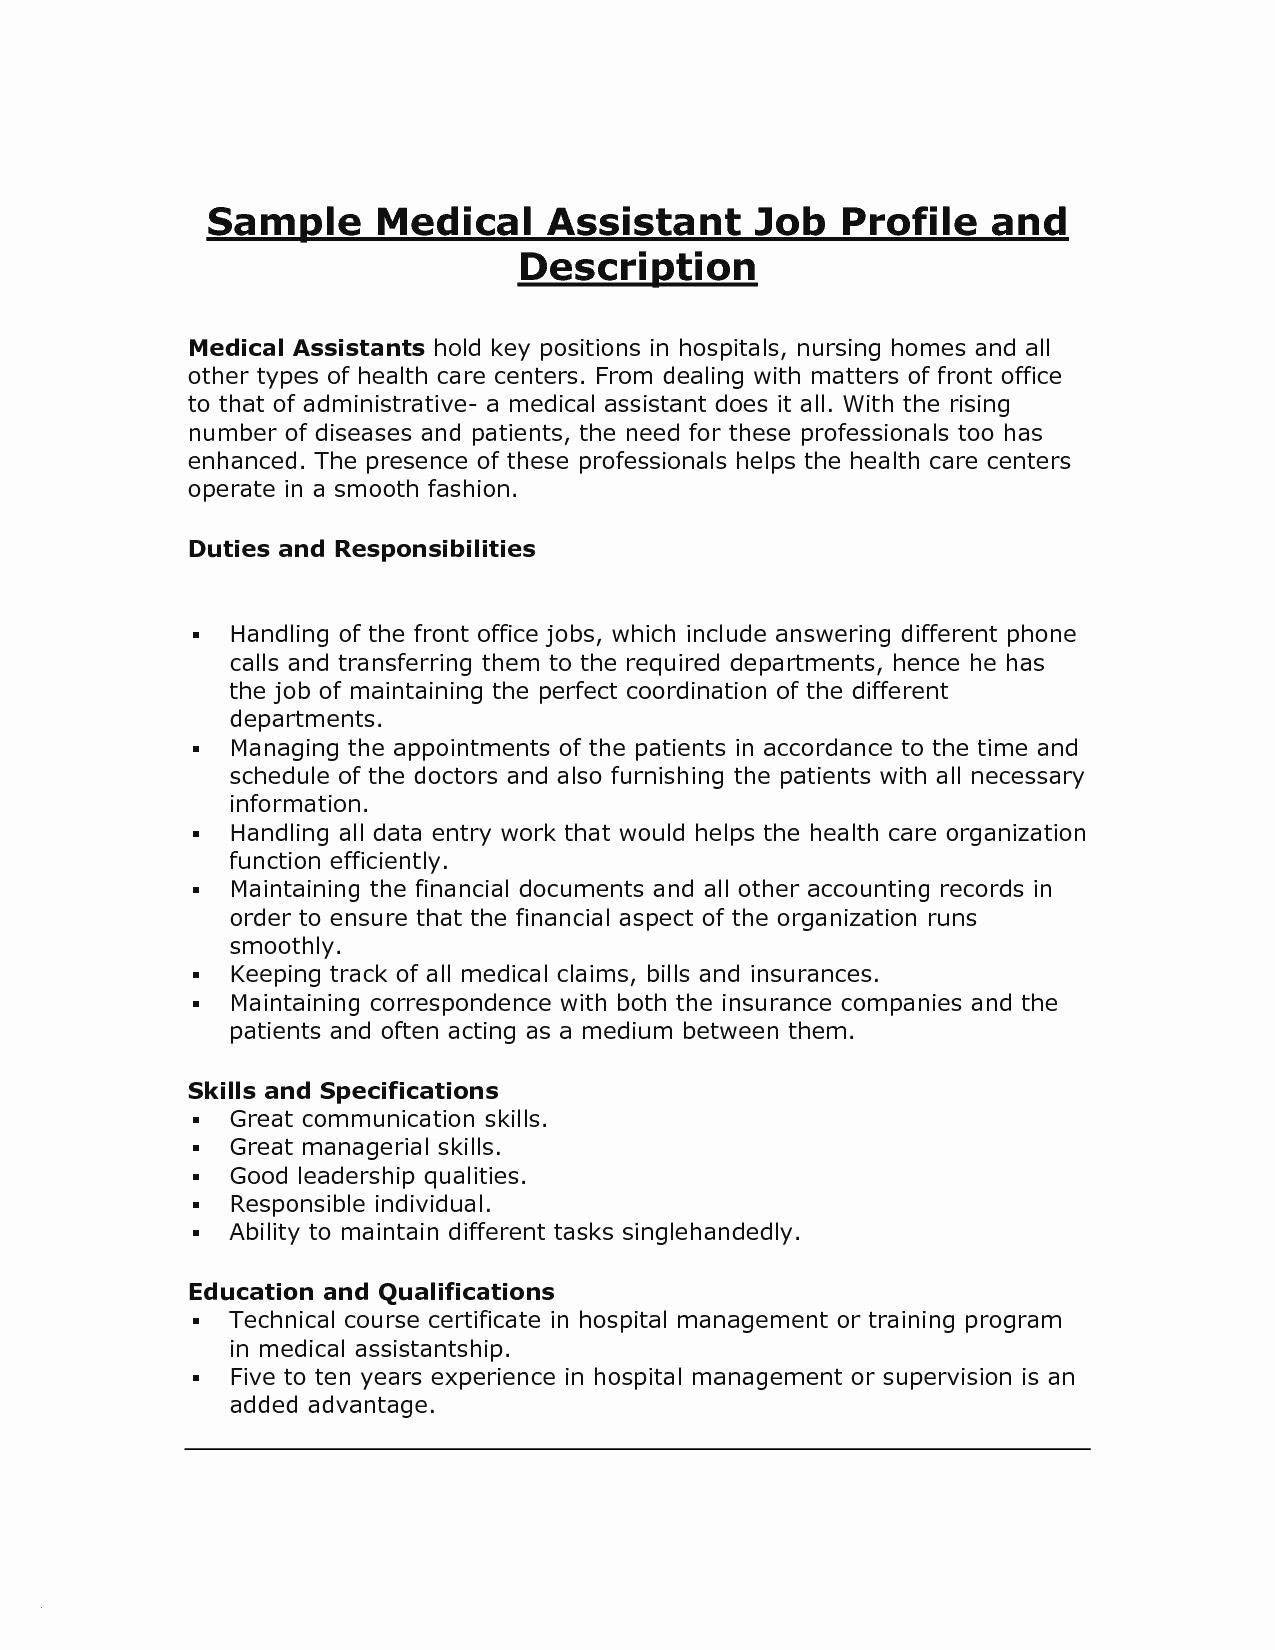 Job Analysis Template Simple Medical assistant Responsibilities Resume Recent Medical